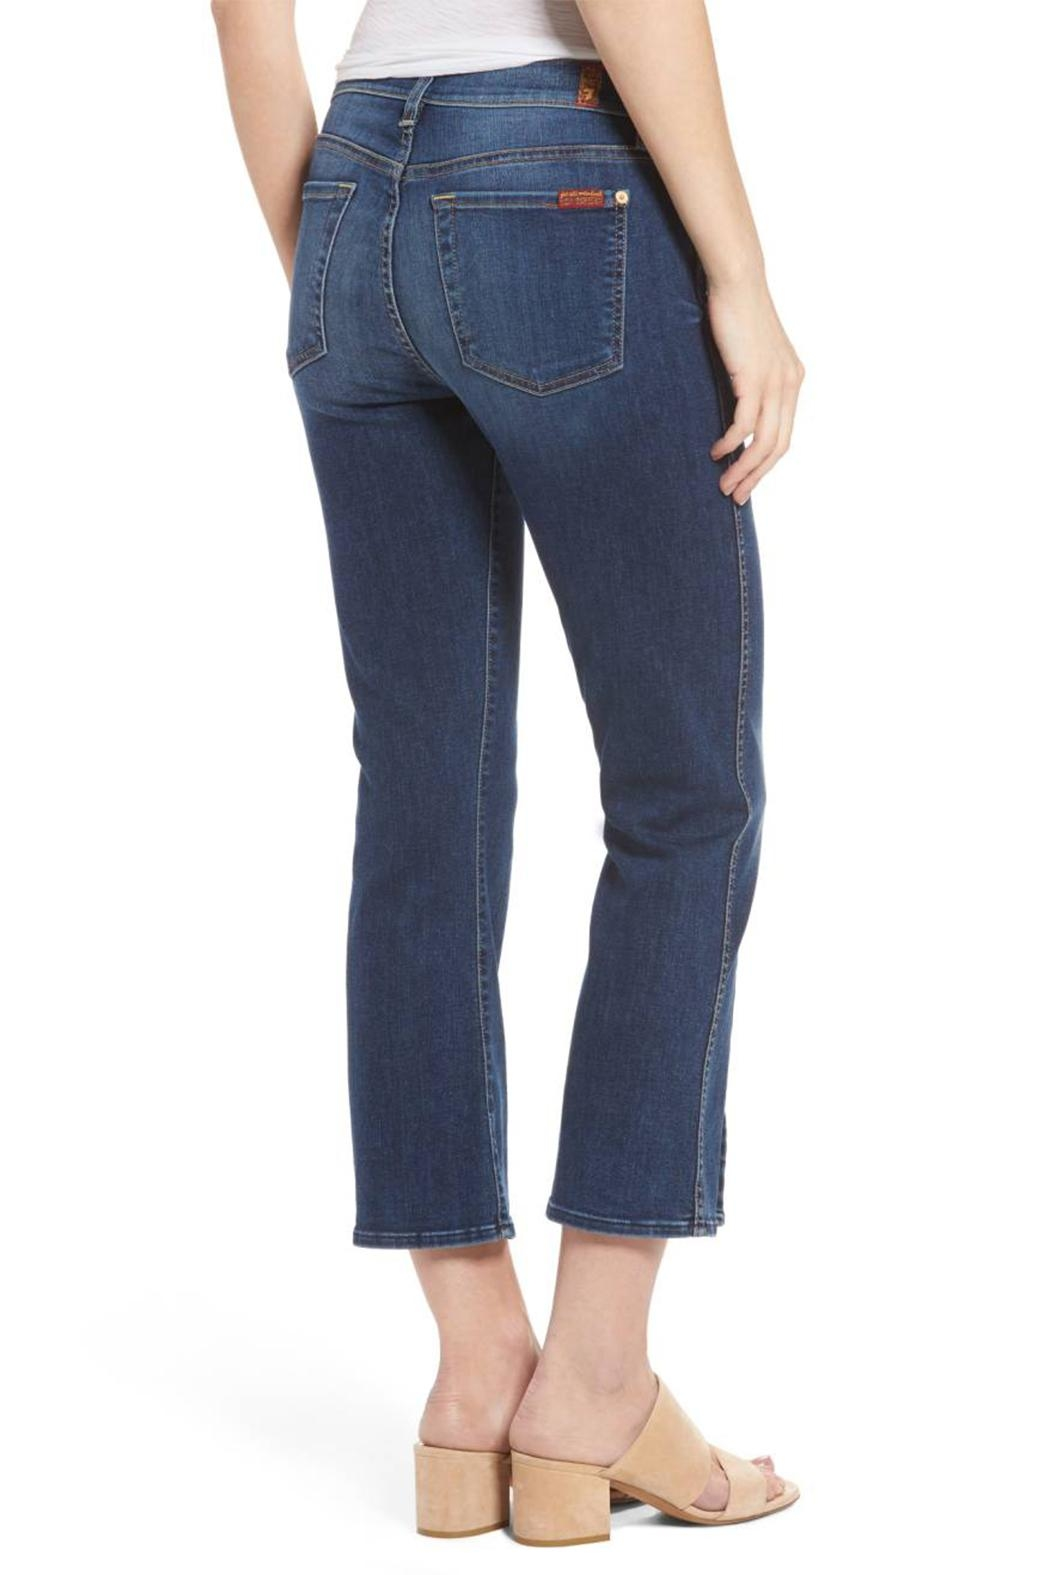 7 For all Mankind Cropped Boot Flare - Front Full Image